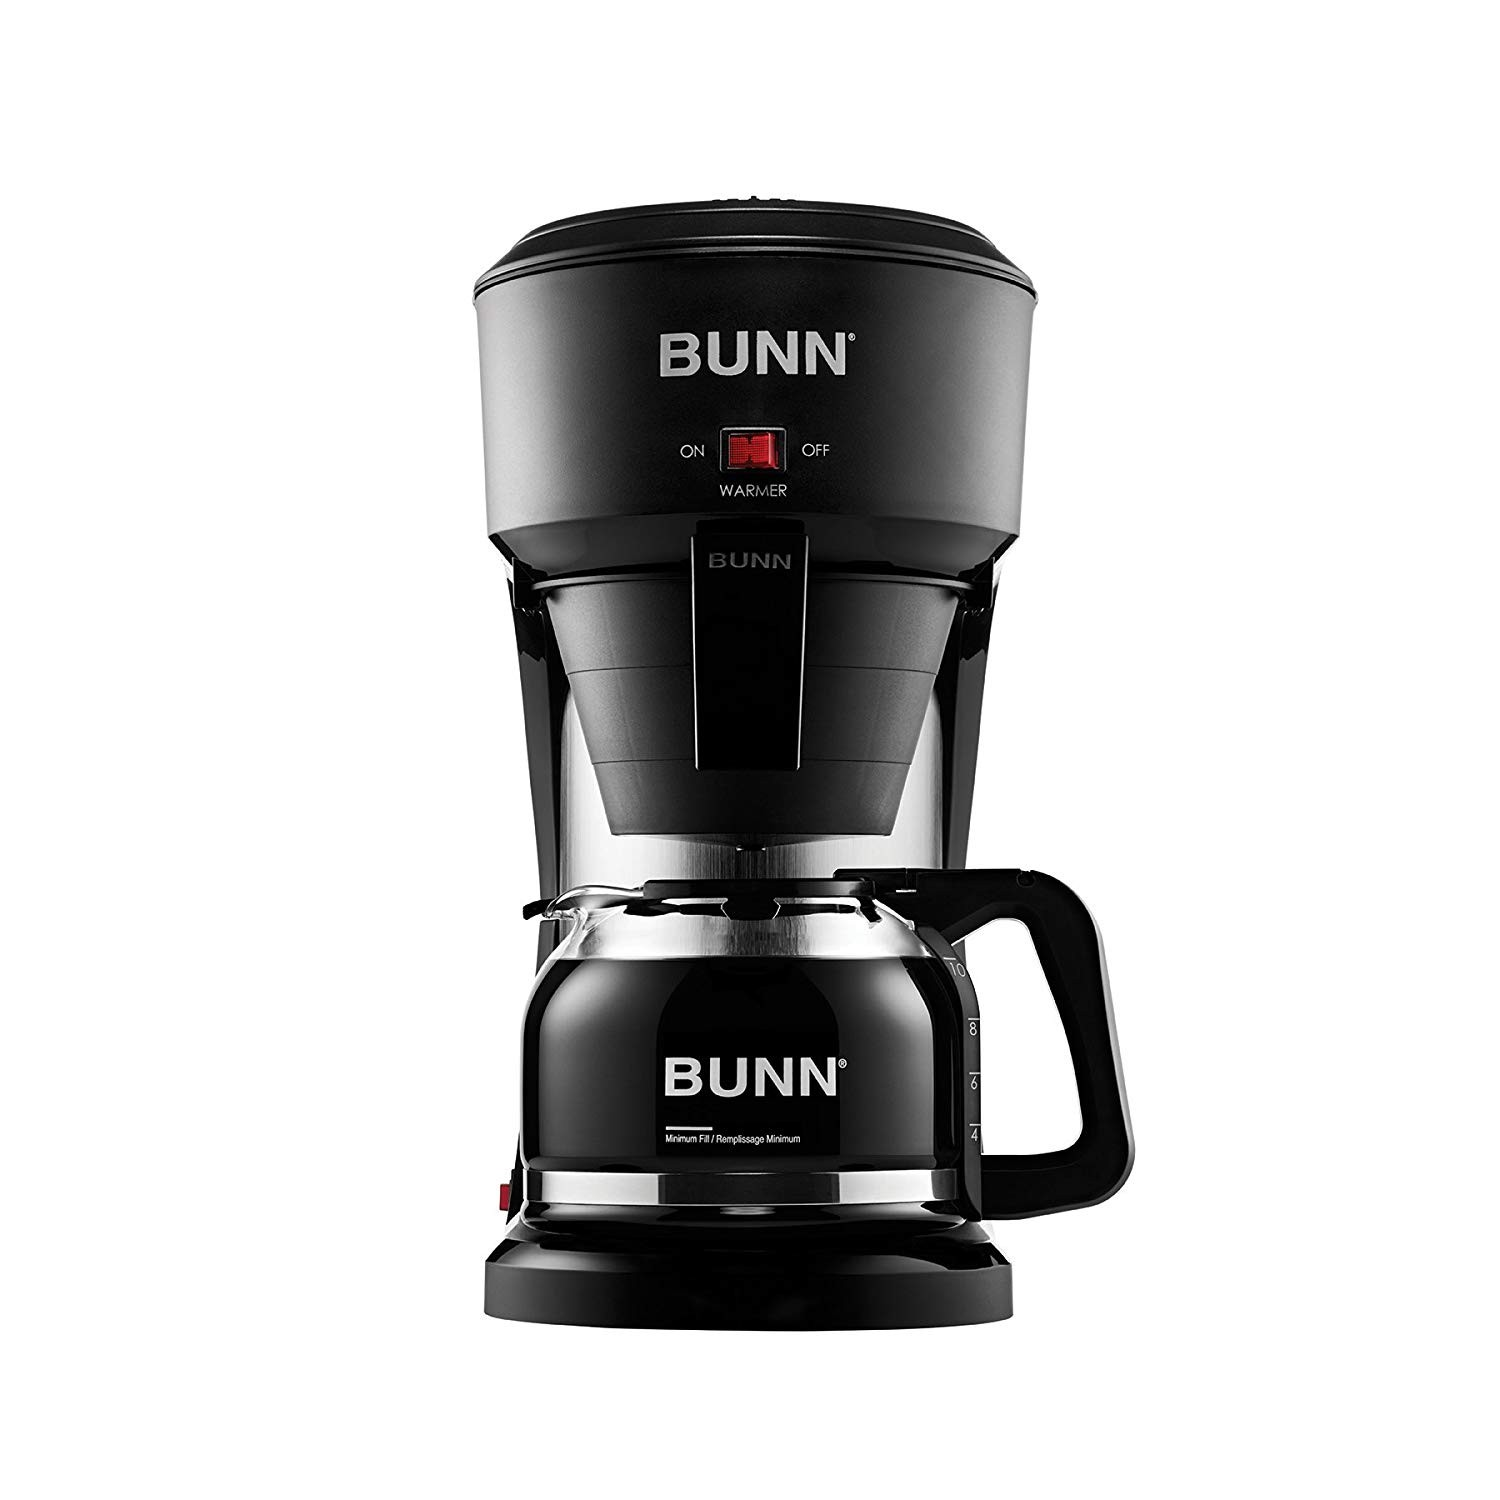 Bunn Coffee Maker Parts Diagram Amazon Bunn Speed Brew 10 Cup Home Coffee Brewer Kitchen & Dining Of Bunn Coffee Maker Parts Diagram